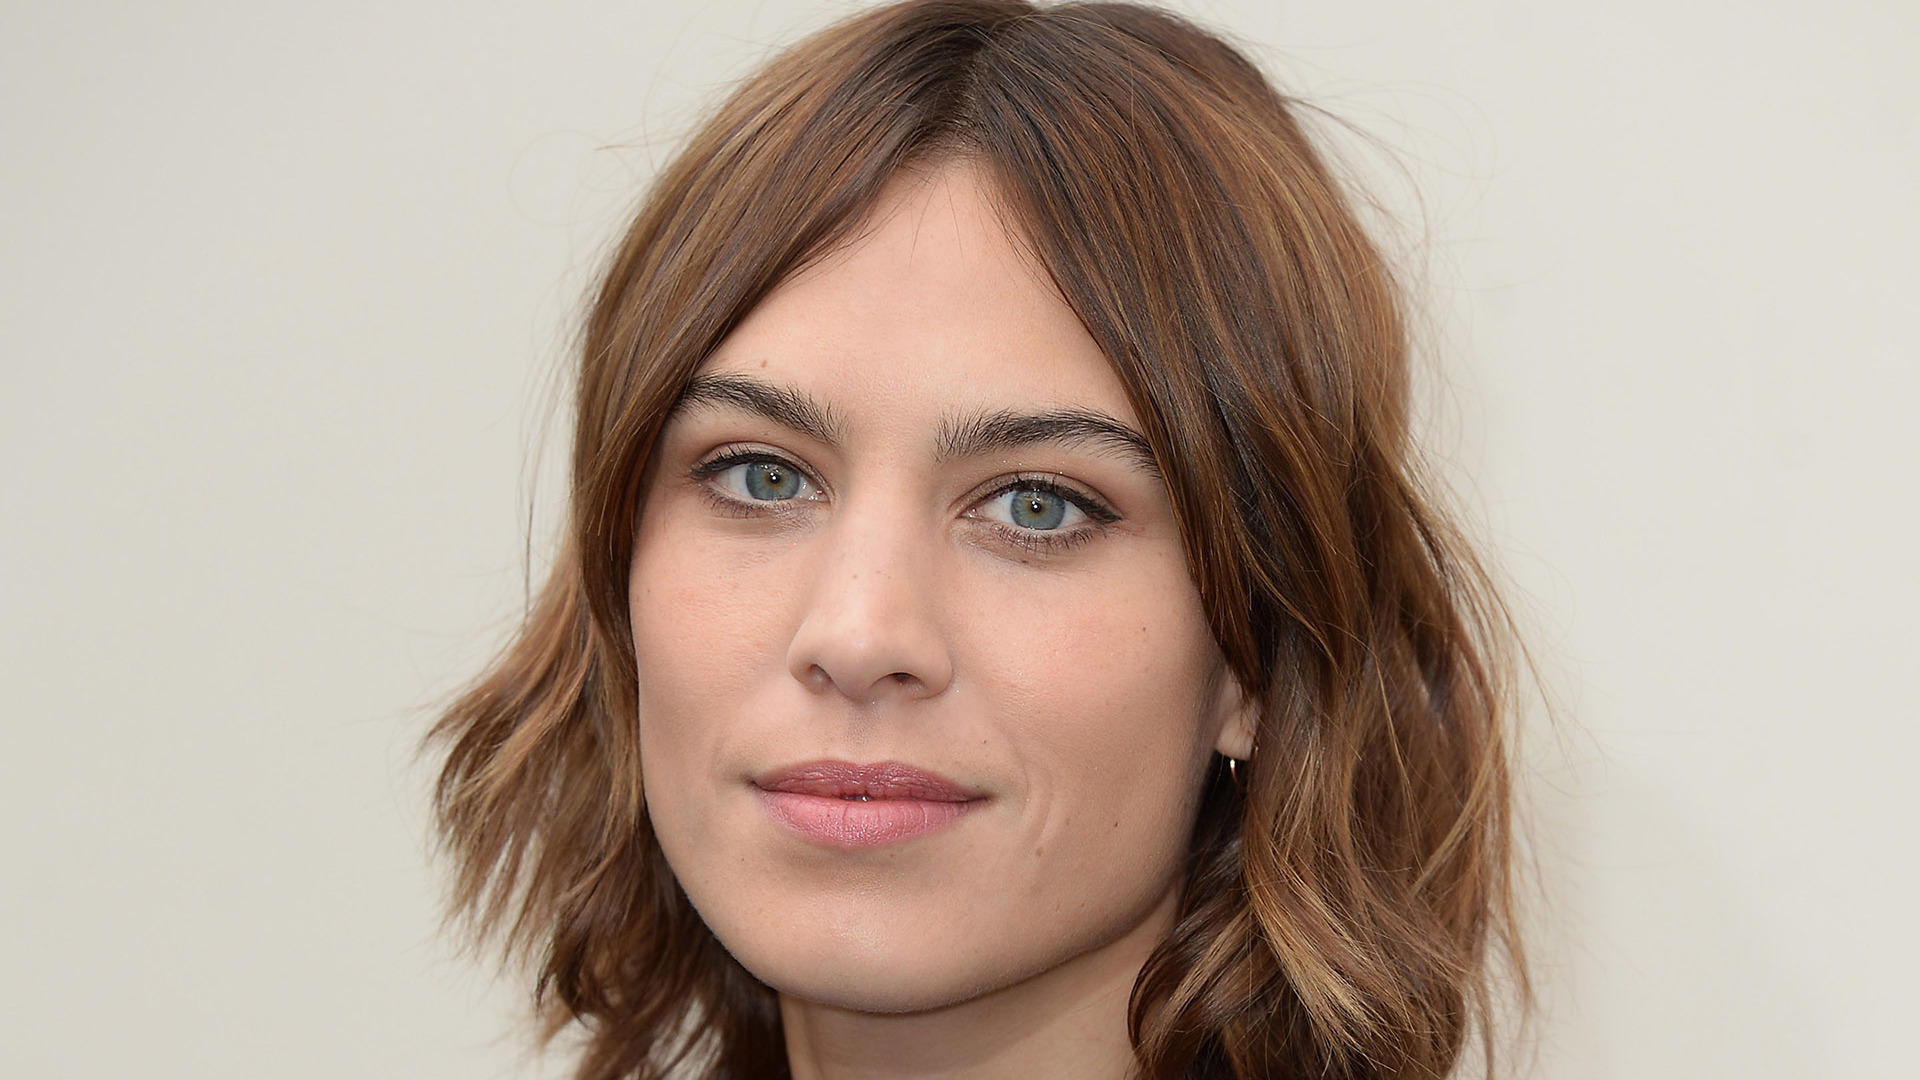 Pictures Of Alexa Chung